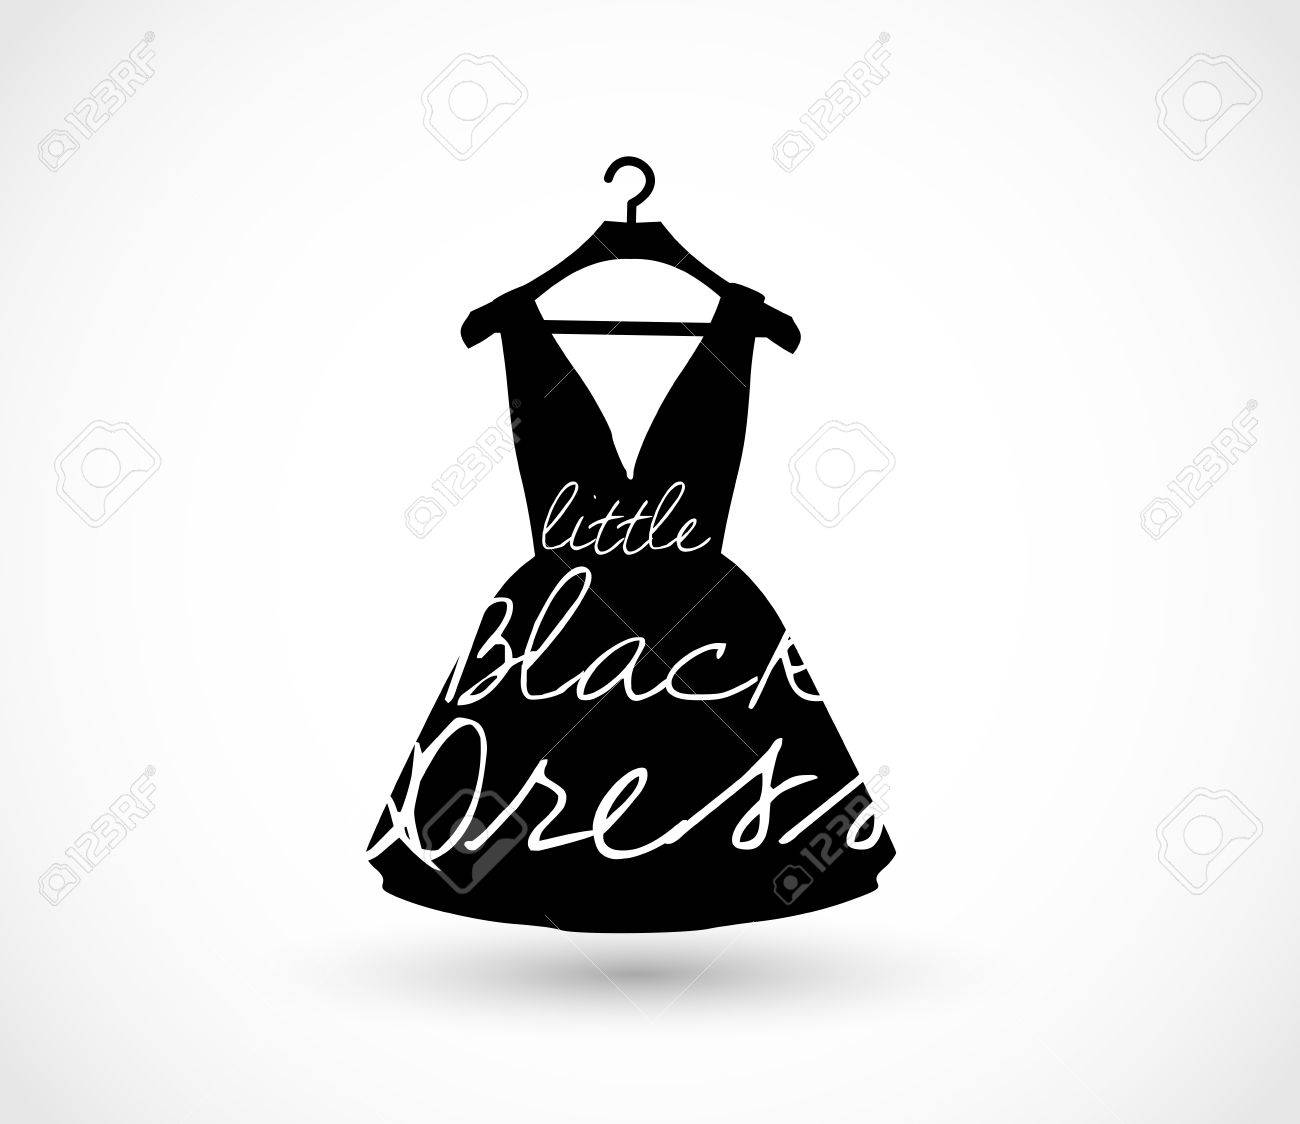 Little black dress on a hanger icon vector.